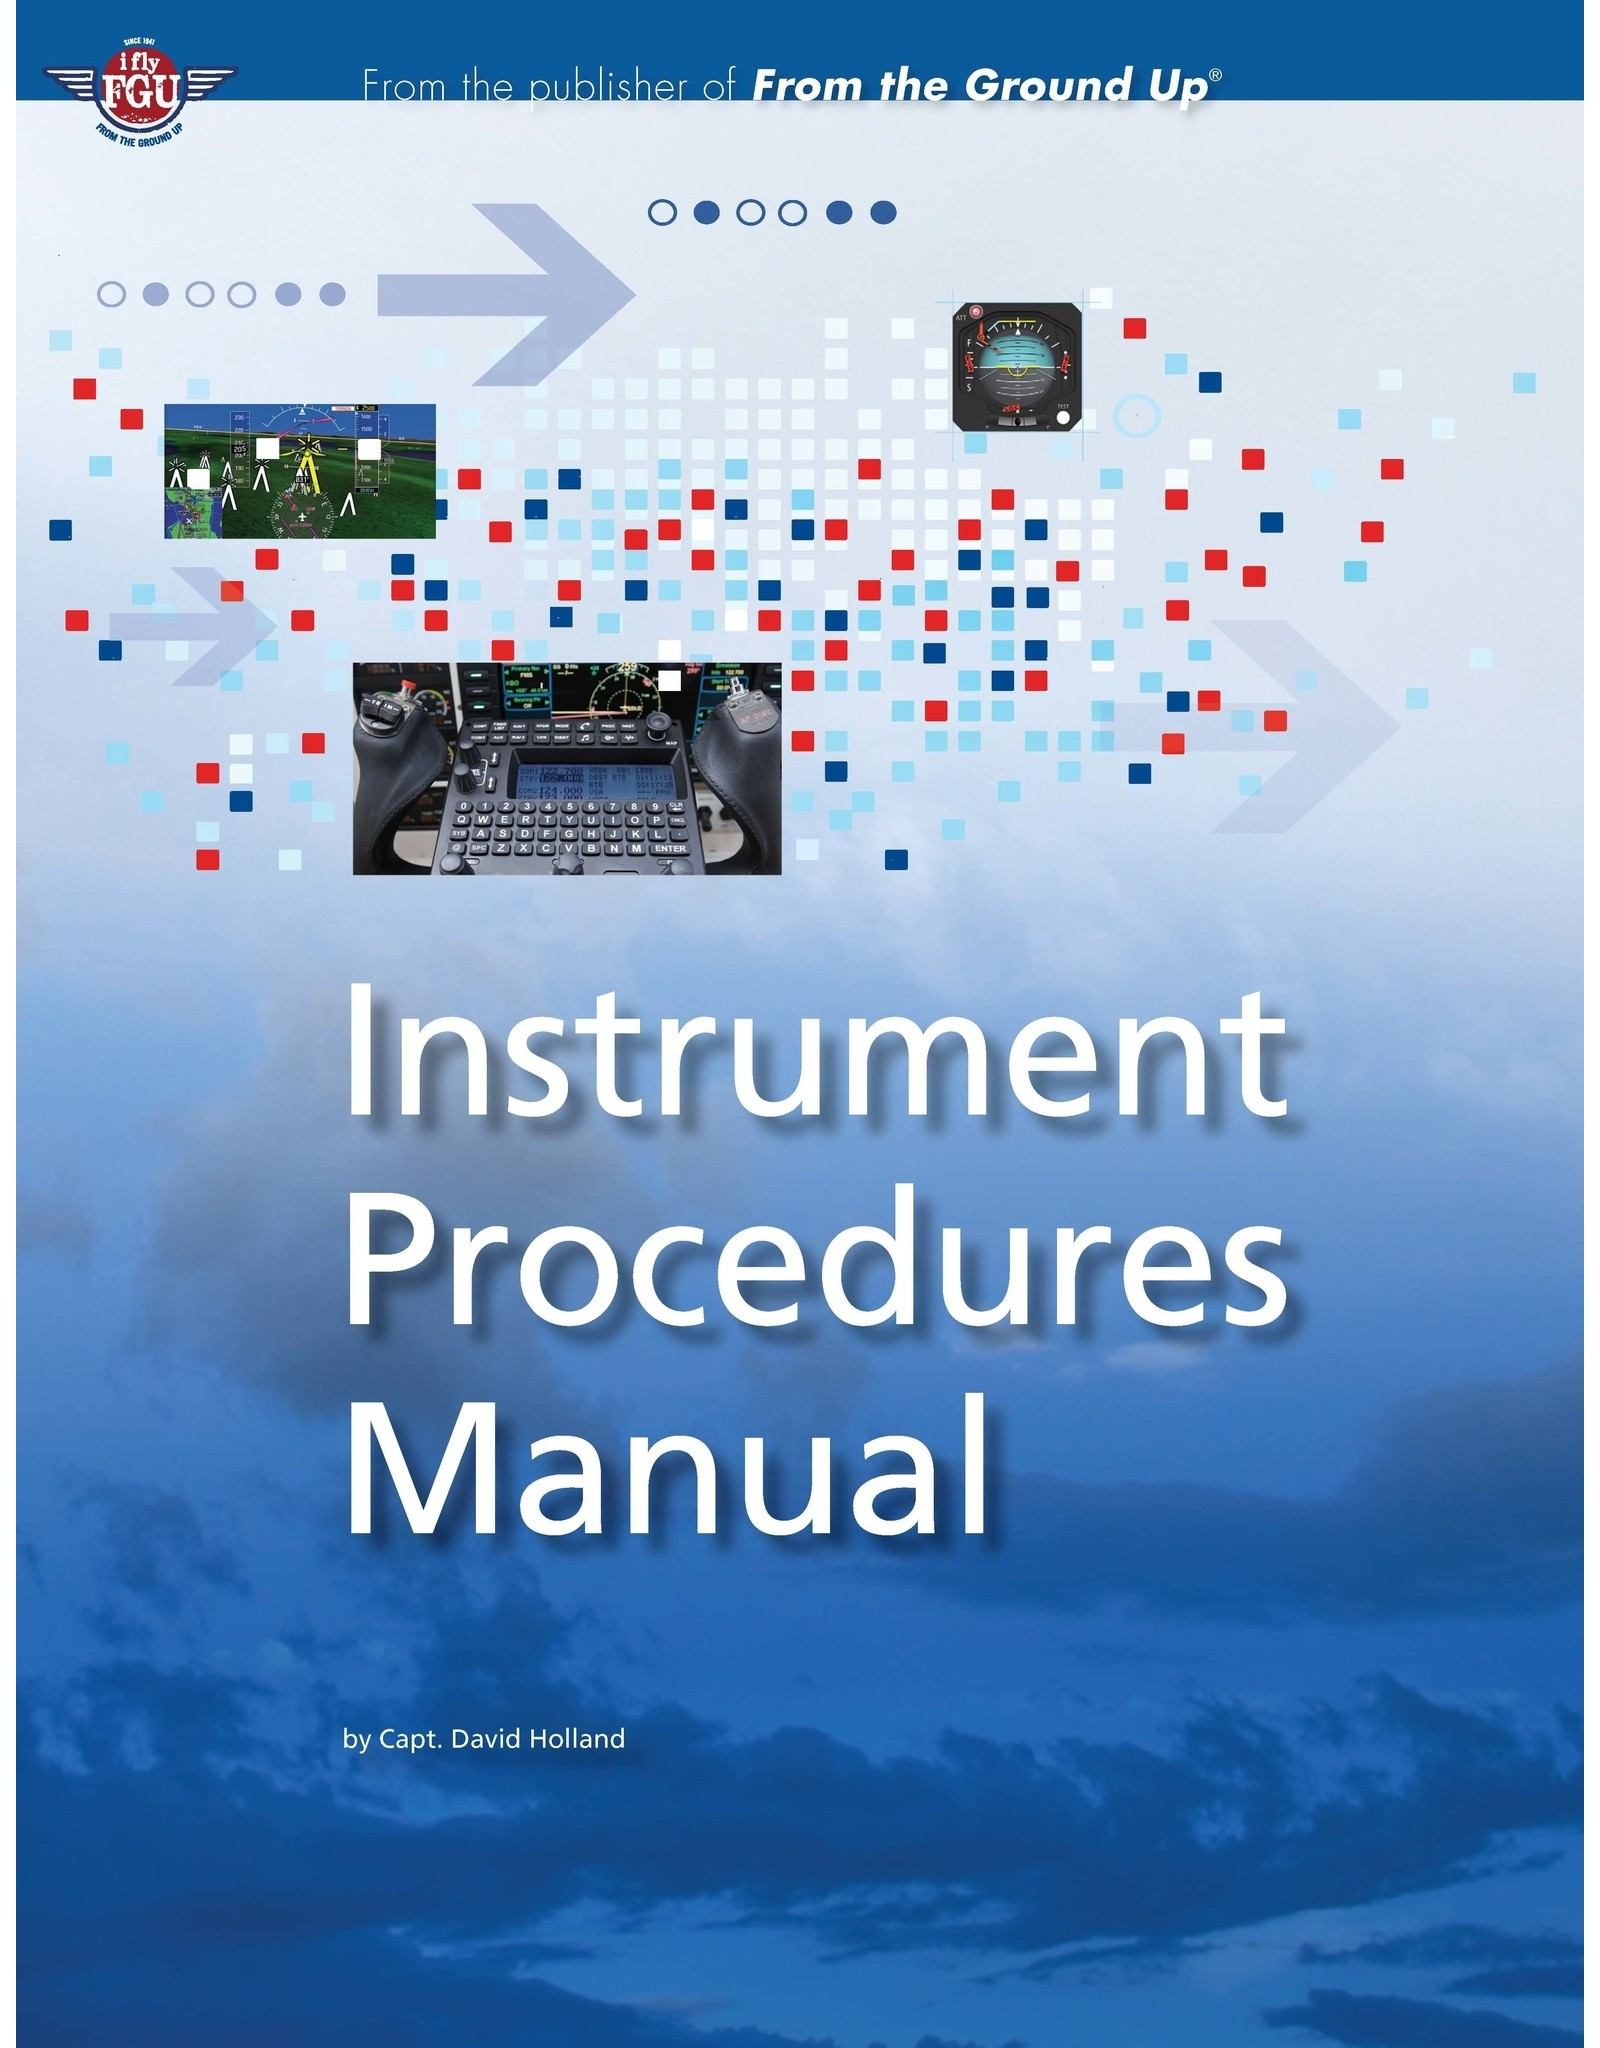 Aviation Publishers Instrument Procedures Manual